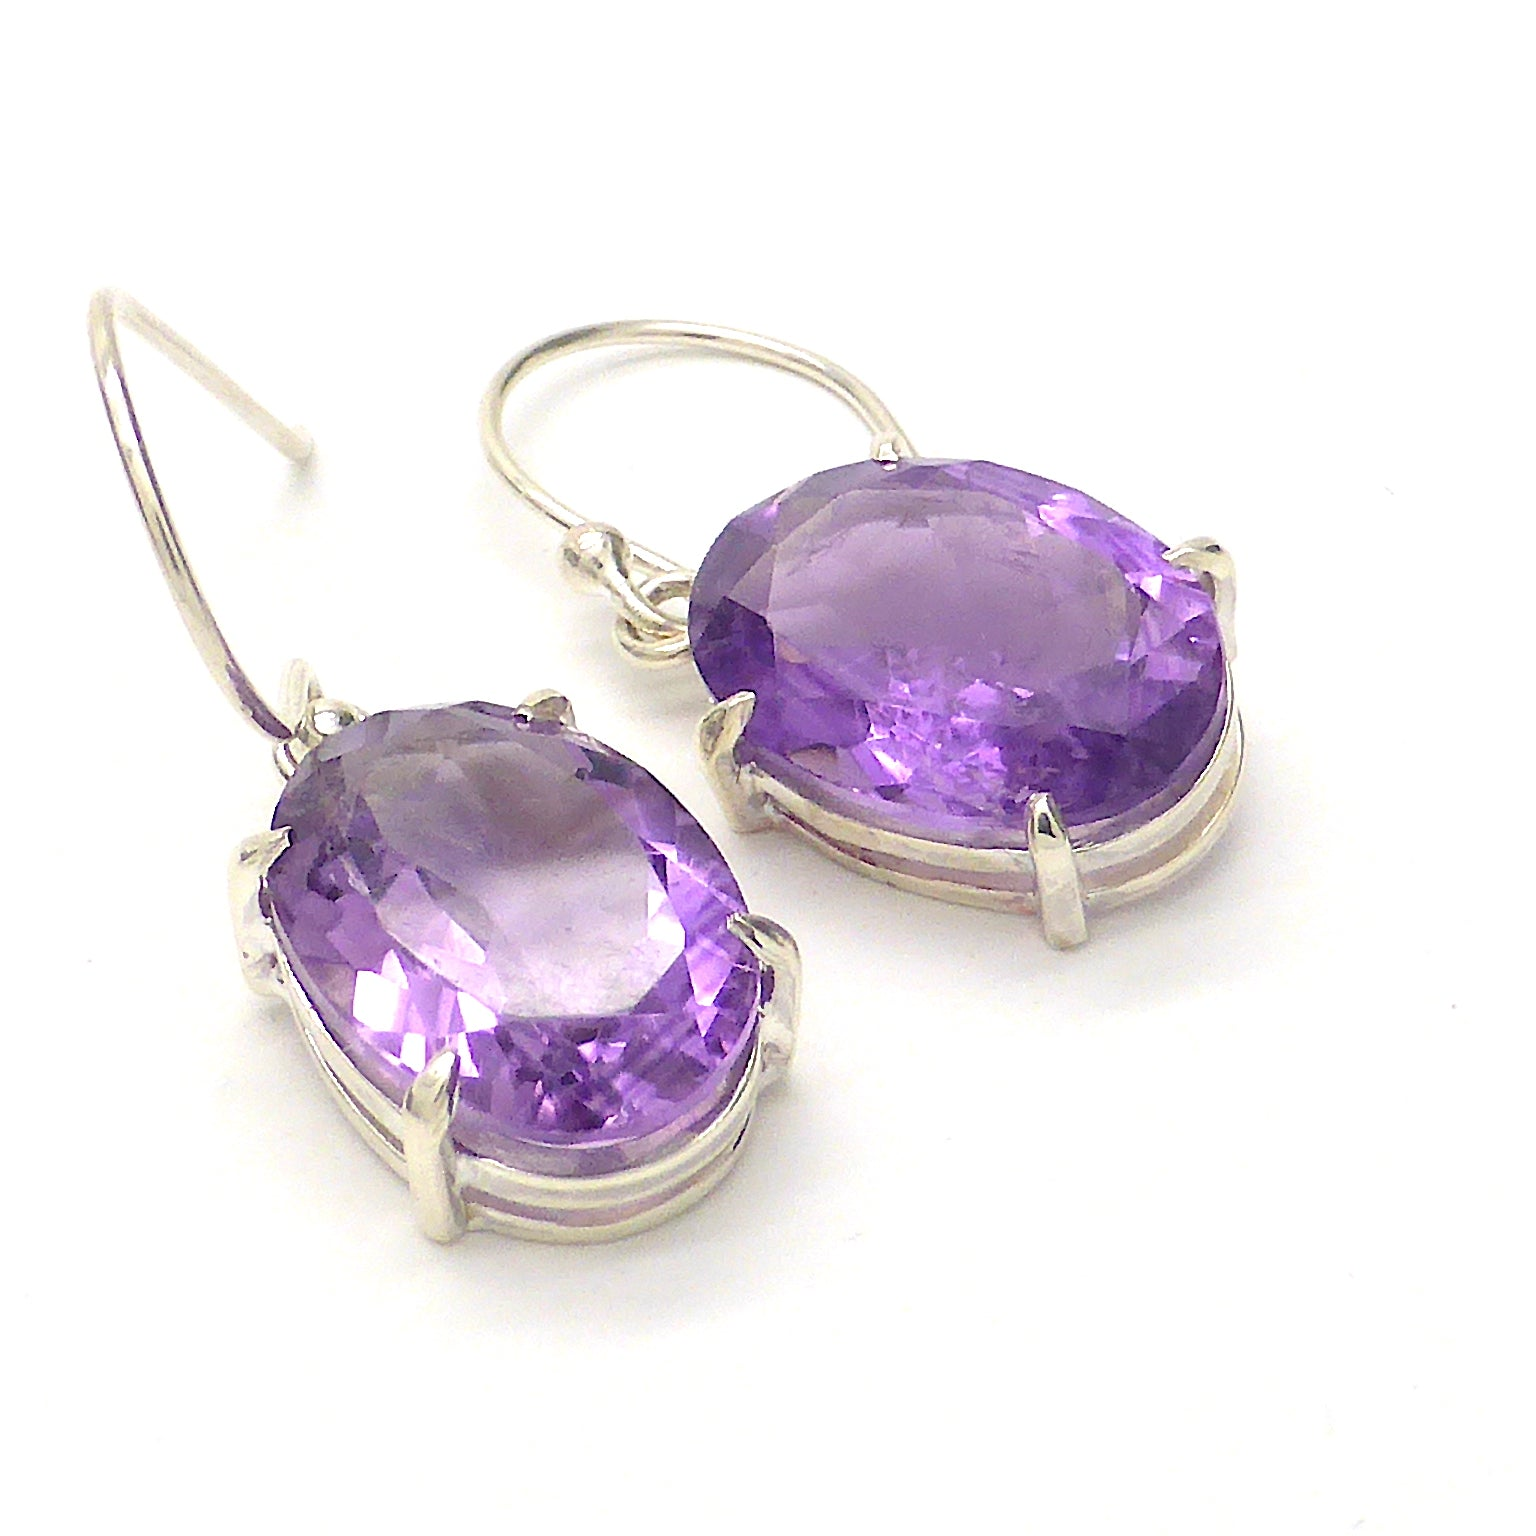 Amethyst Earrings | Faceted Ovals | 925 Sterling Silver | Secure claw setting side slots for light | Crystal Heart Australia since 1986